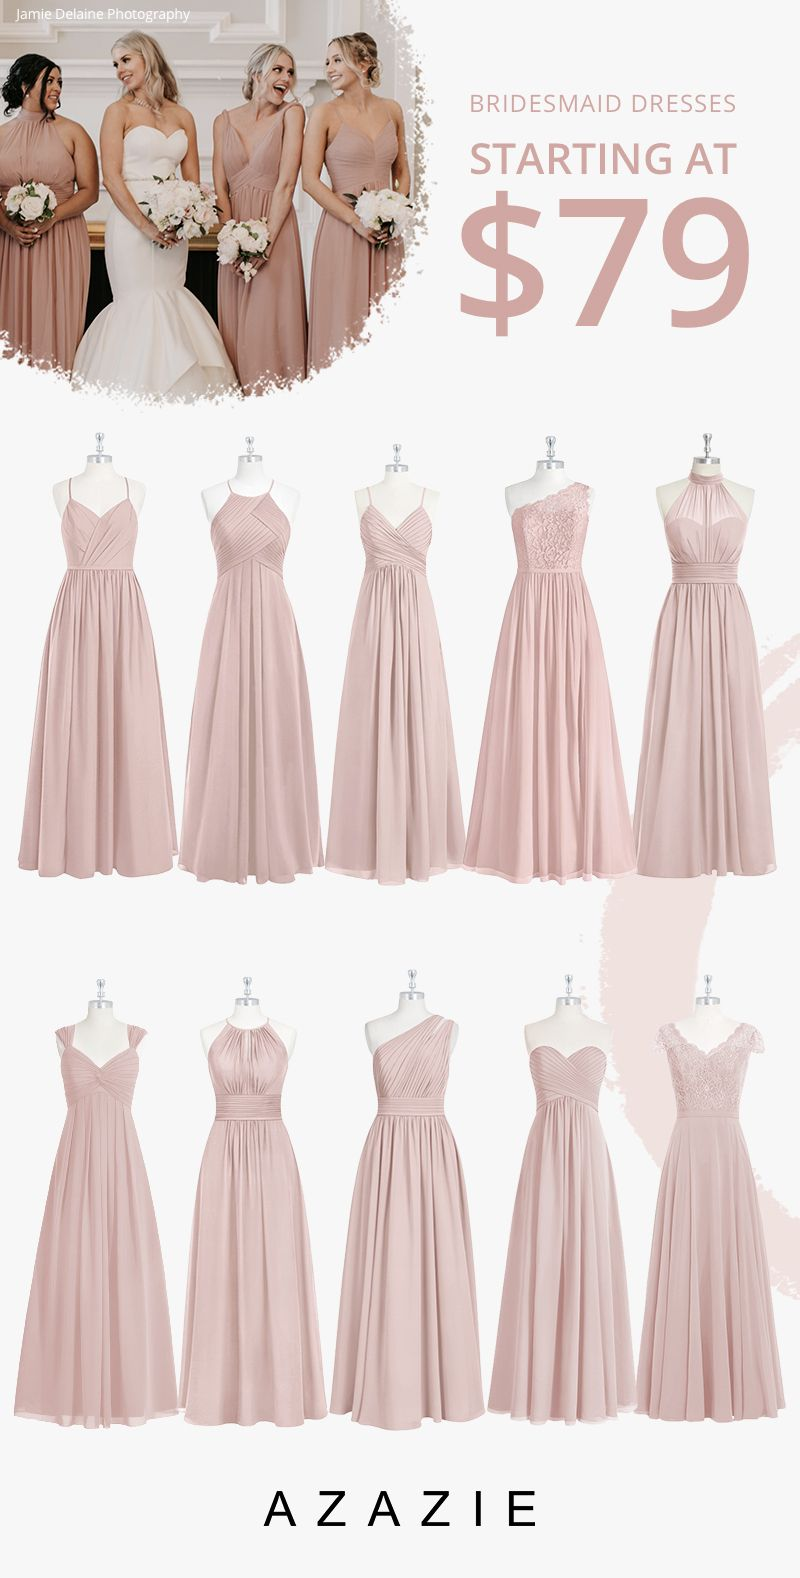 Dusty Rose Bridesmaid Dresses At Affordable Prices In 2020 Dusty Rose Bridesmaid Dresses Rose Bridesmaid Dresses Fall Bridesmaid Dresses